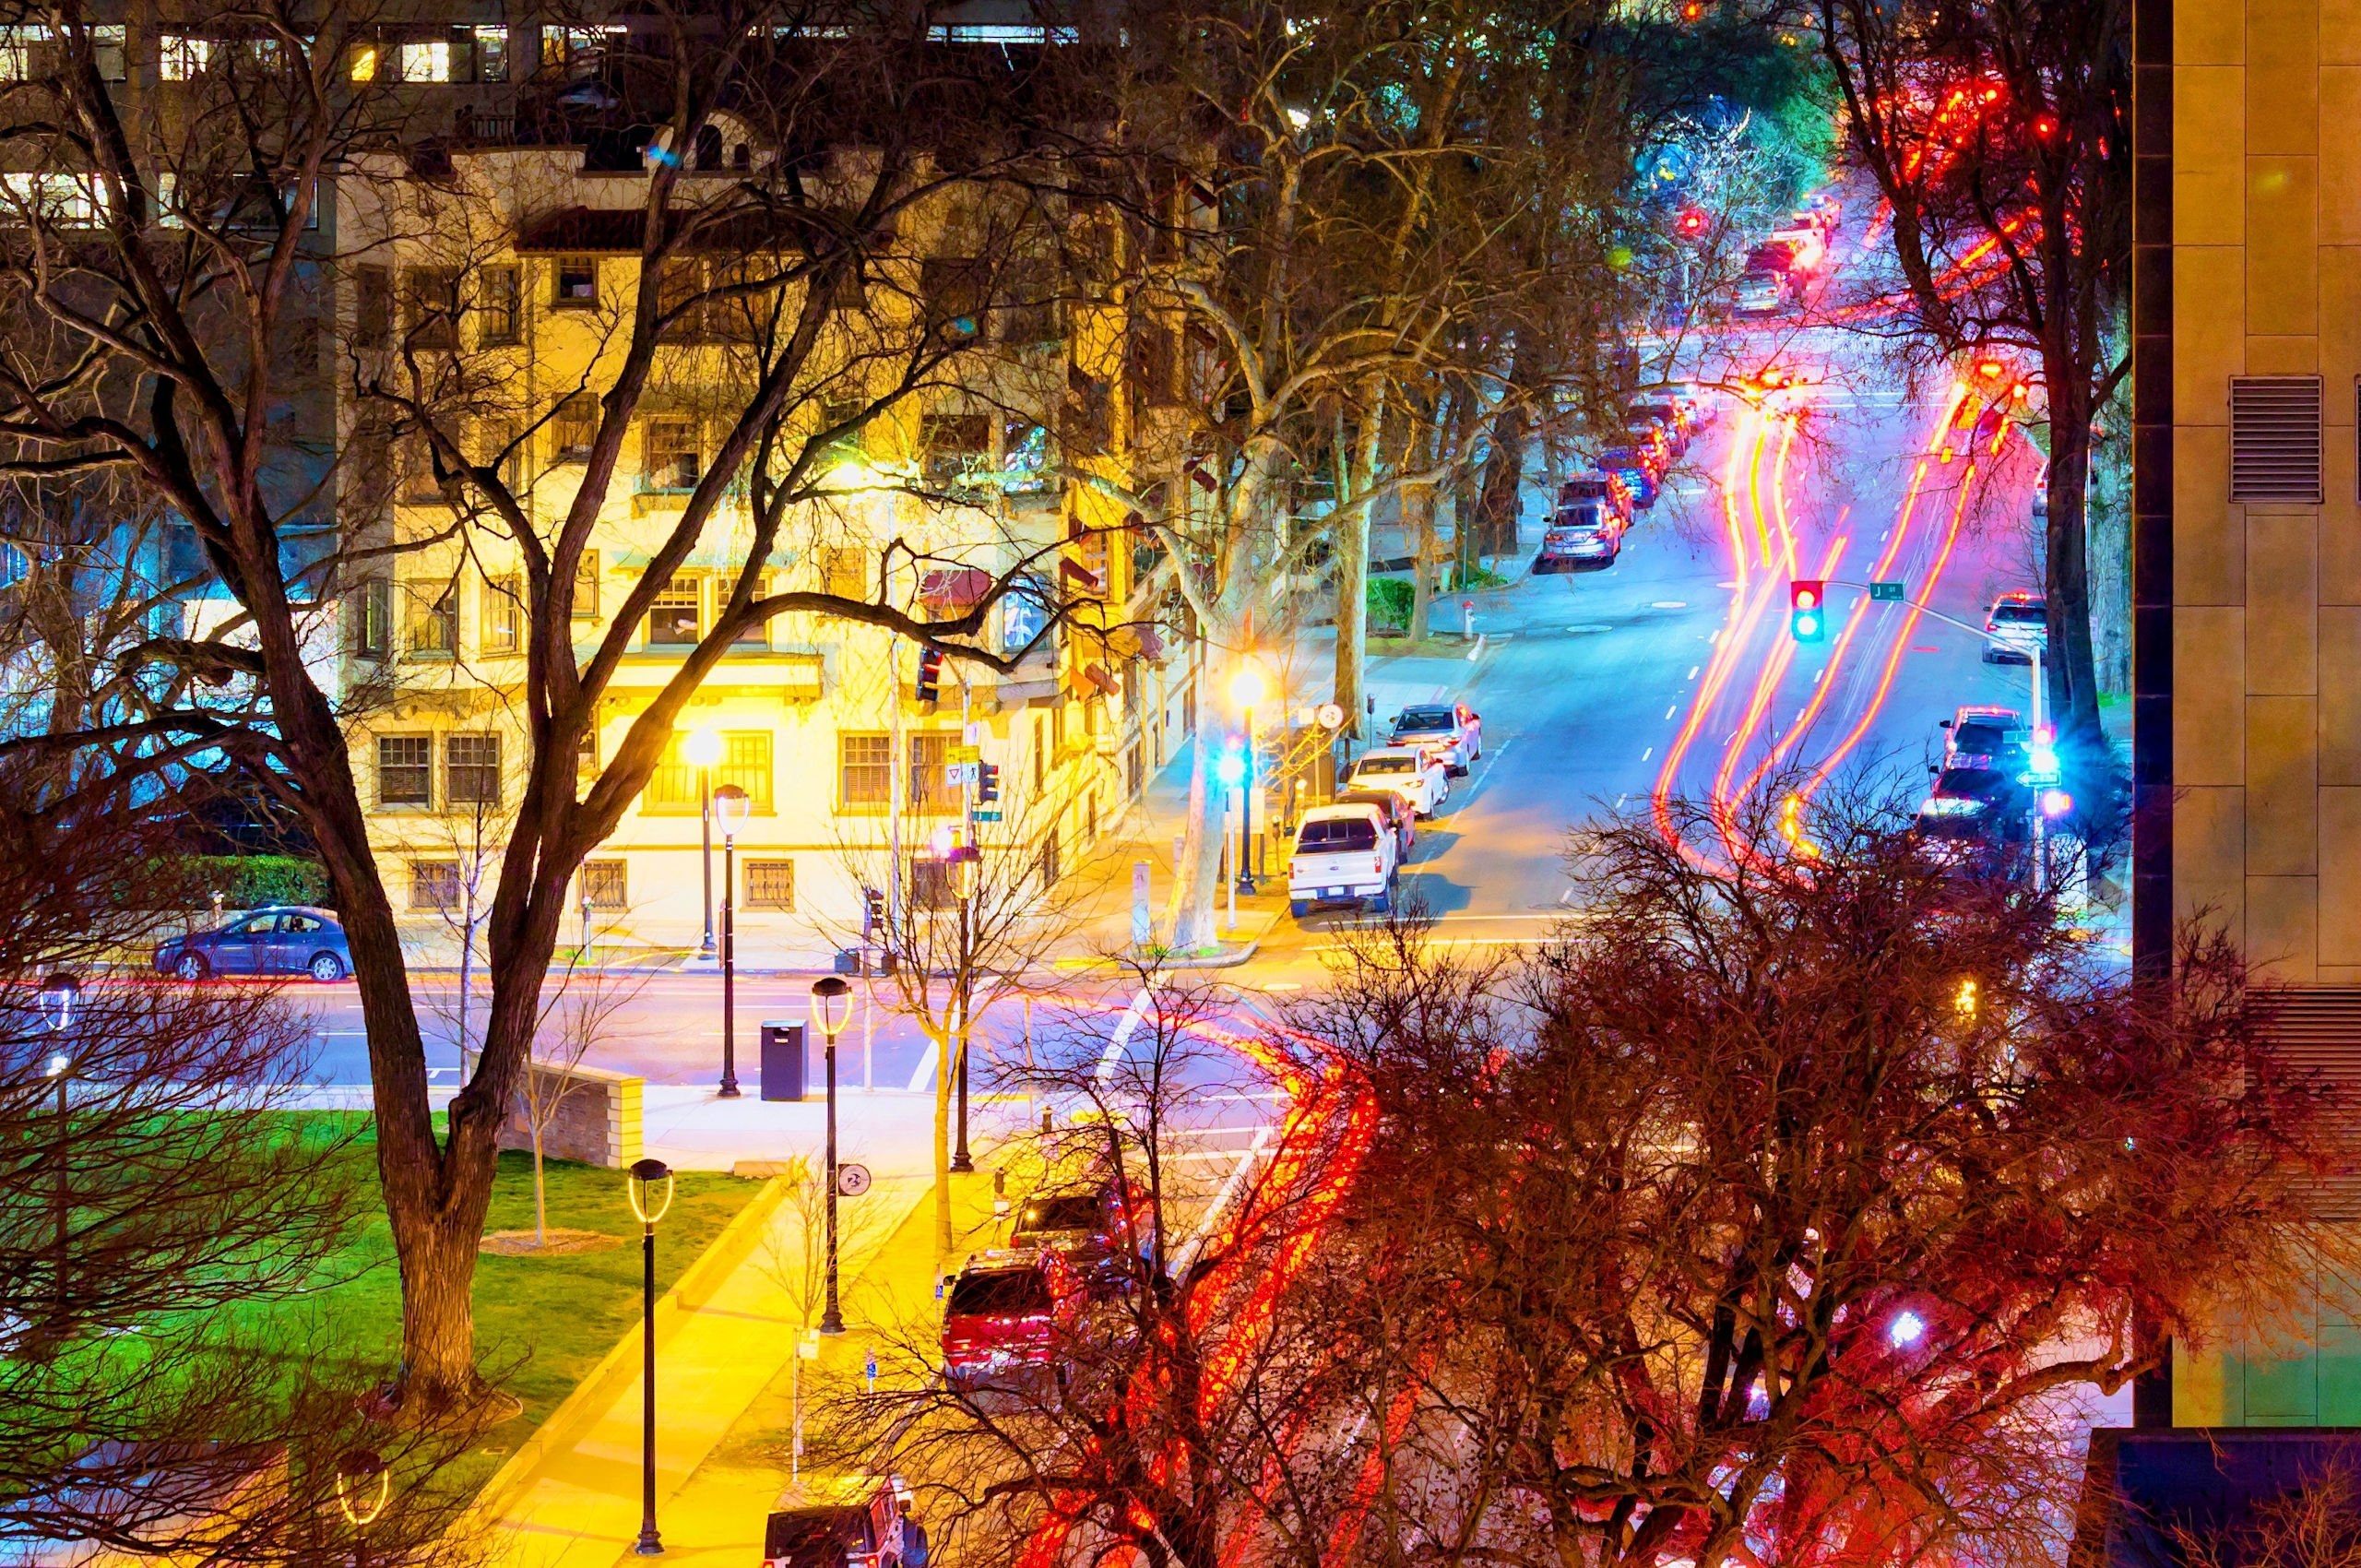 Night-time streetscape showing an intersection with a park, large trees, apartment buildings, skyscraper, parked cars and old-fashioned street lamps, with bright multi-coloured lighting and red trails from car tail-lights